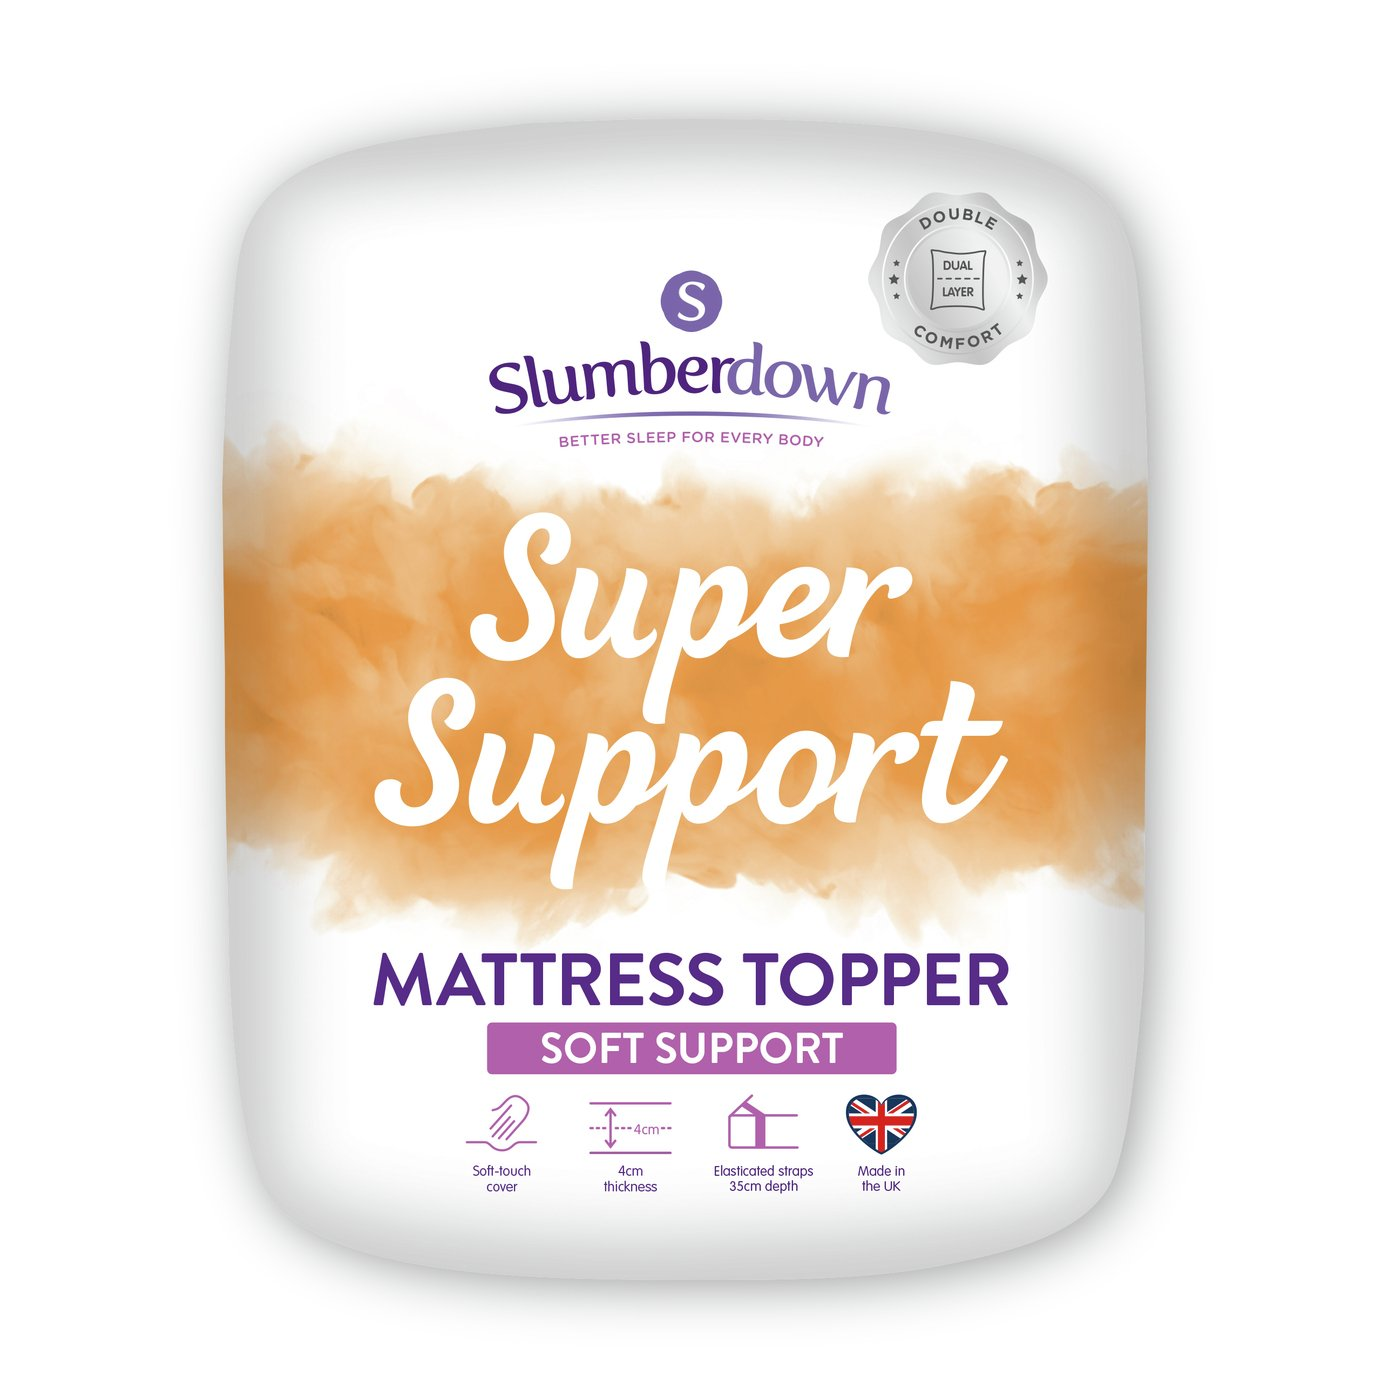 Slumberdown Support 5cm Mattress Topper - Single